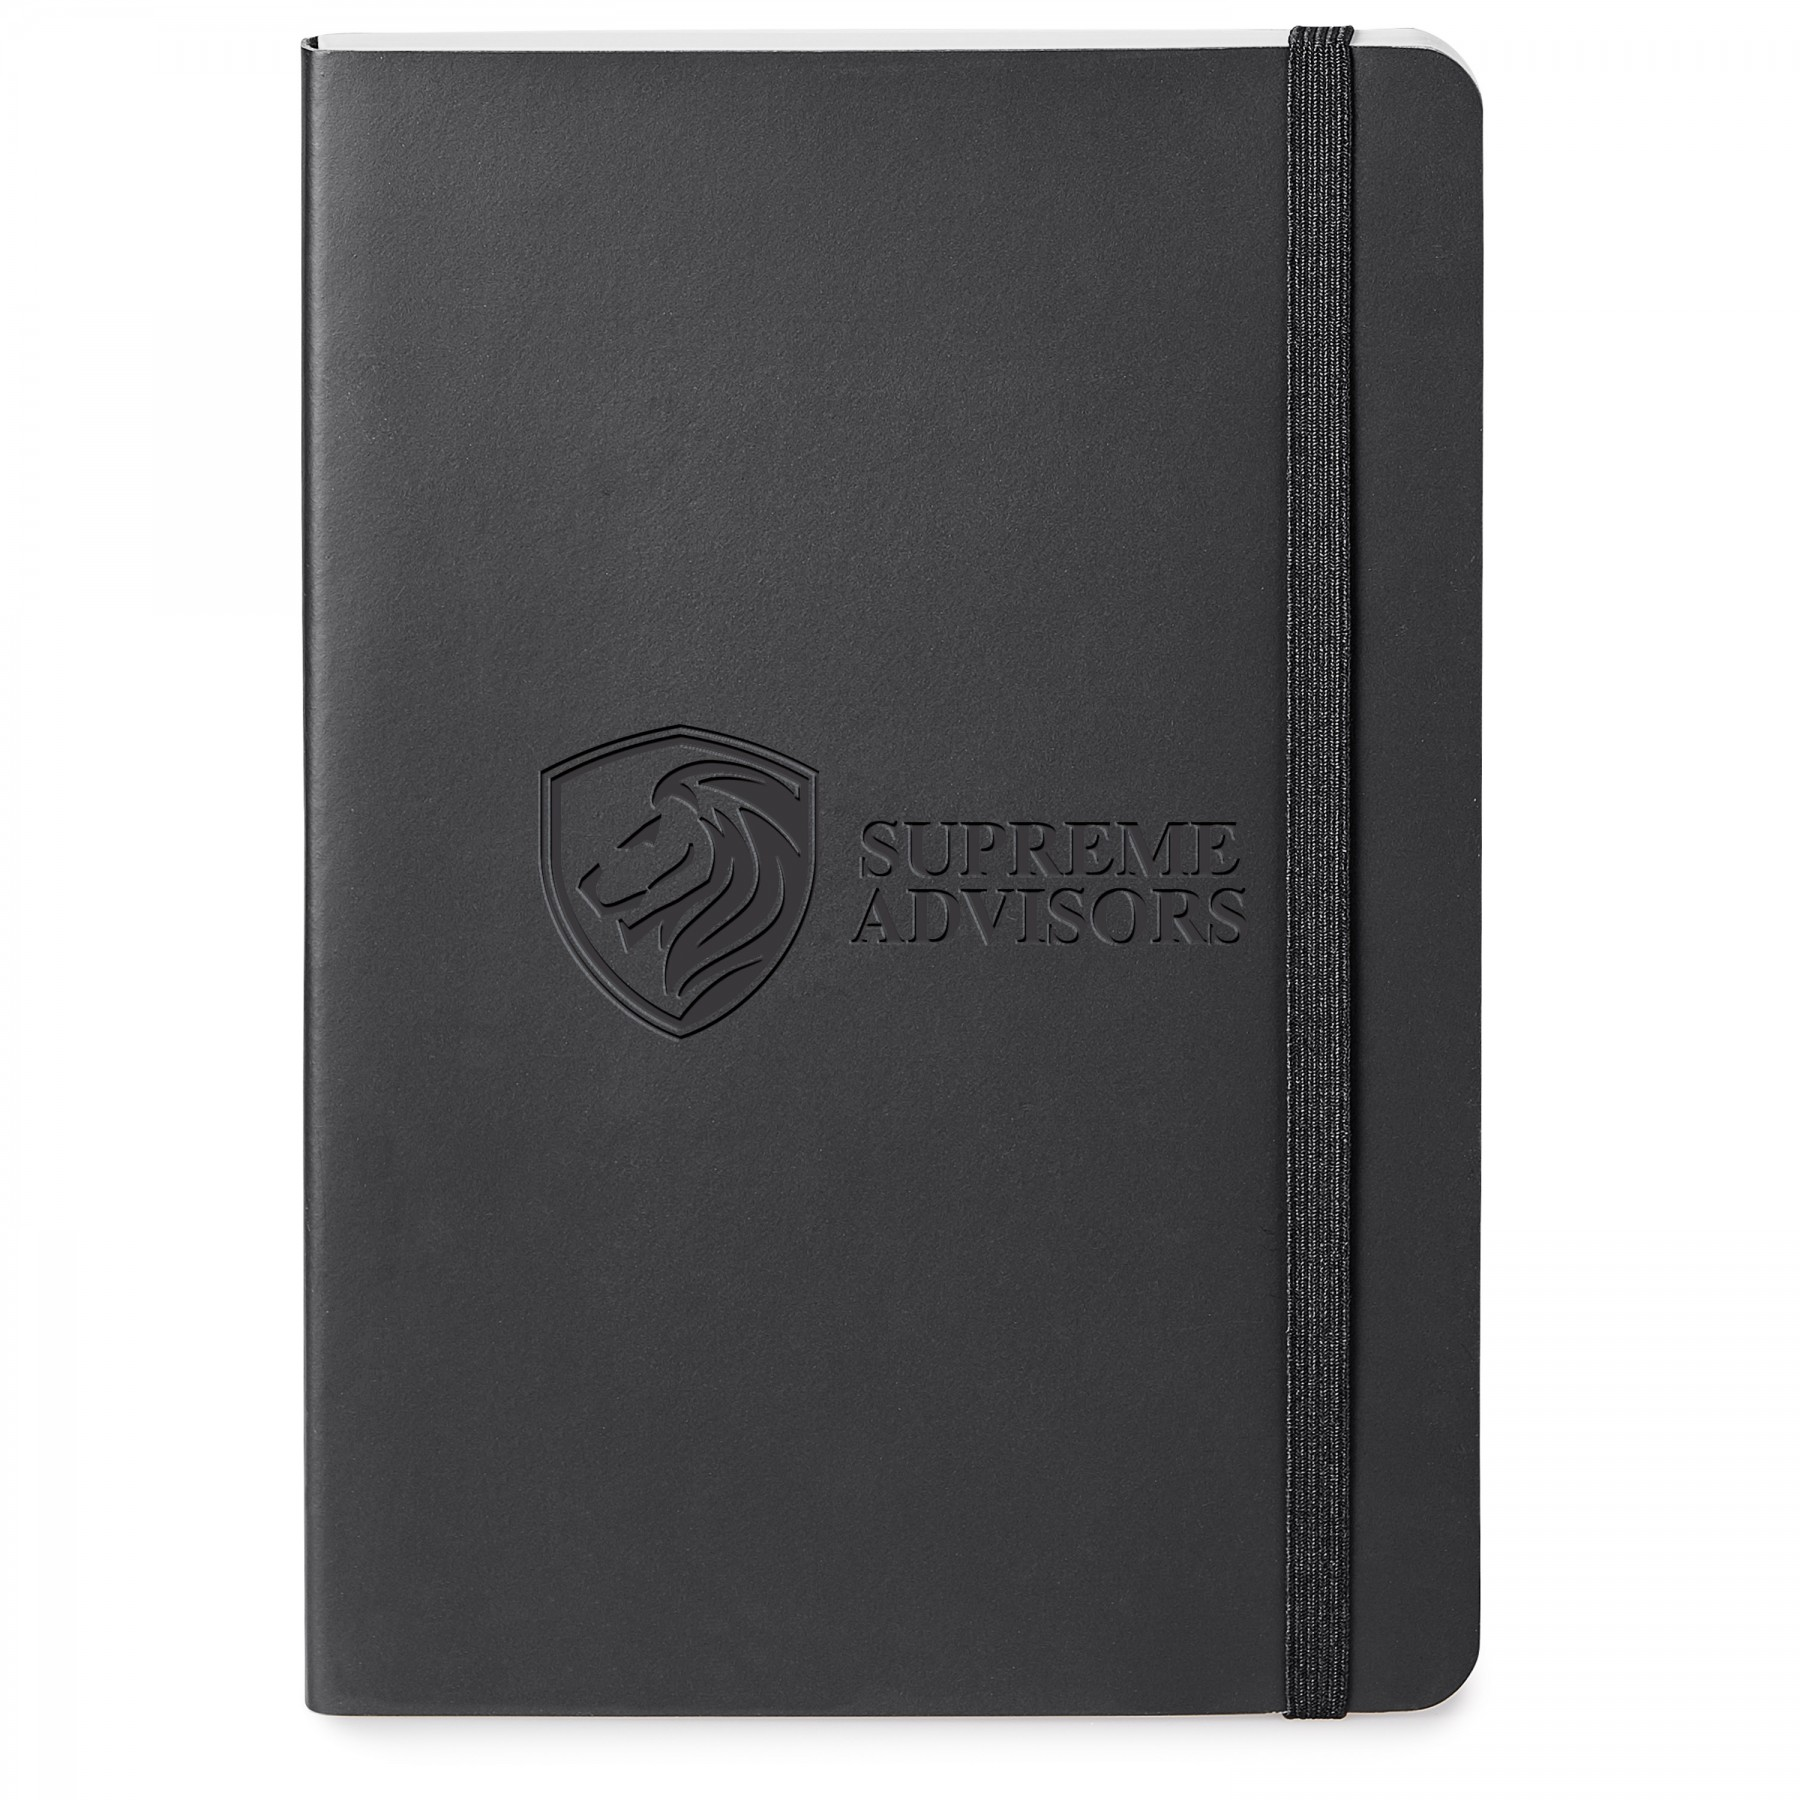 Giuseppe Di Natale Perfect Bound Leather Journal, ST601, Debossed Logo